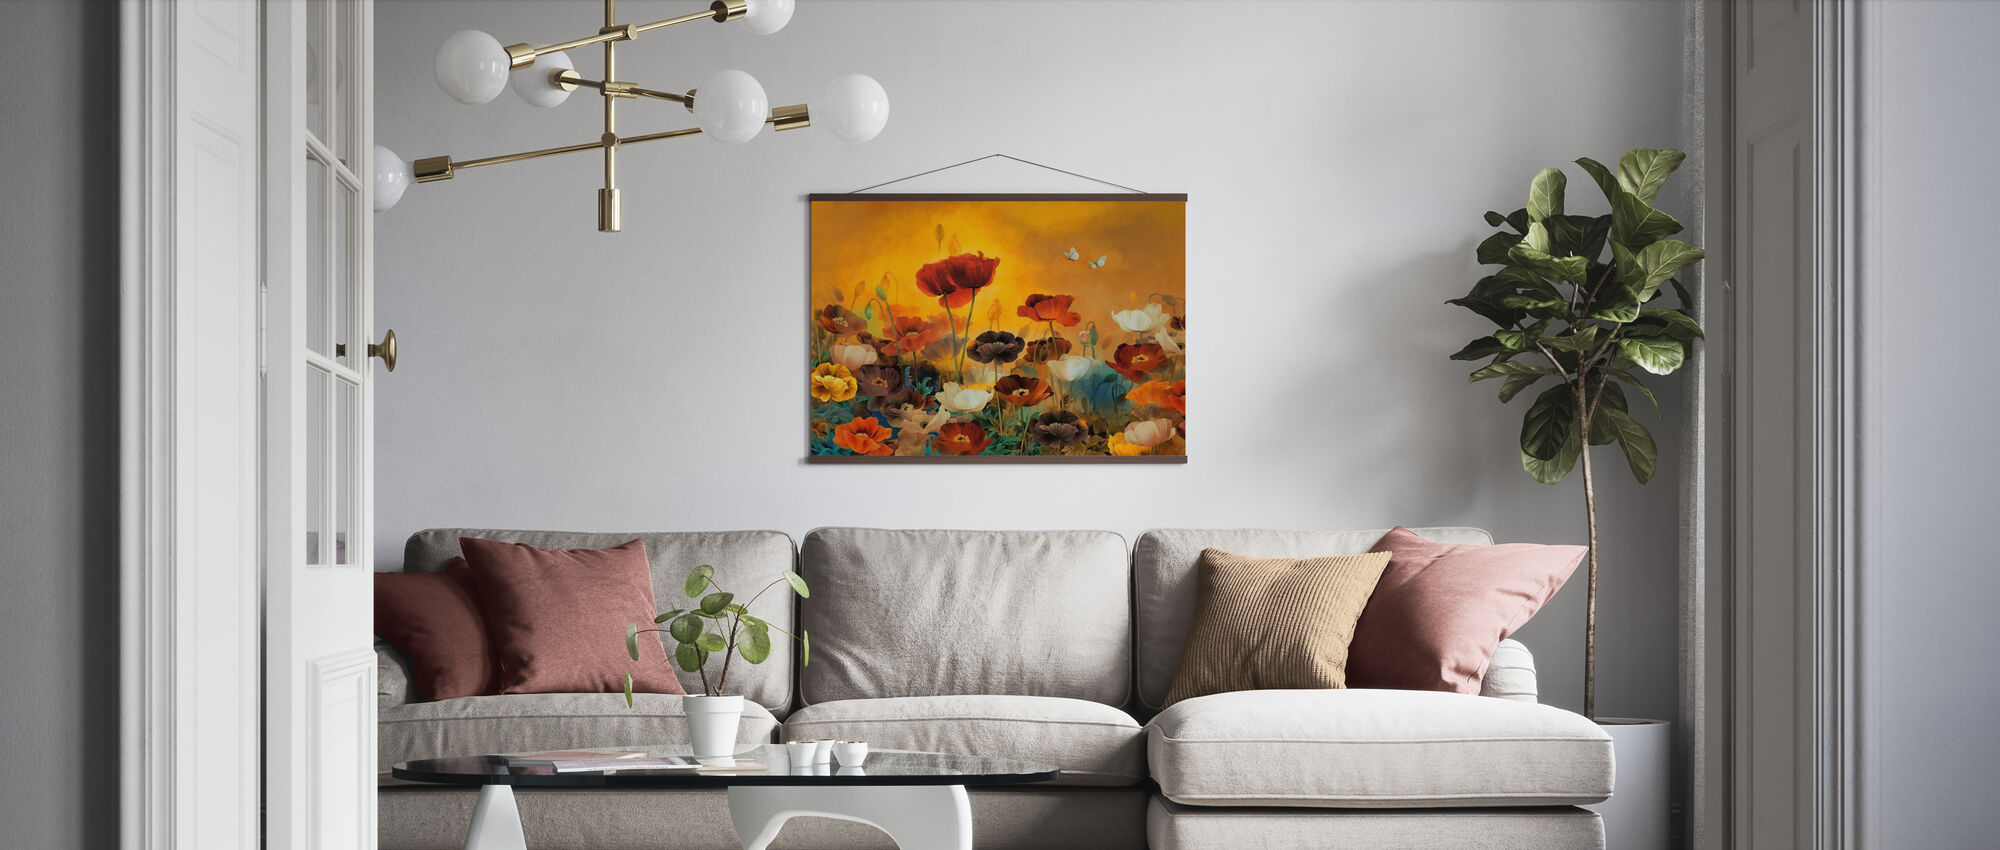 Poppies Poppies - Poster - Living Room